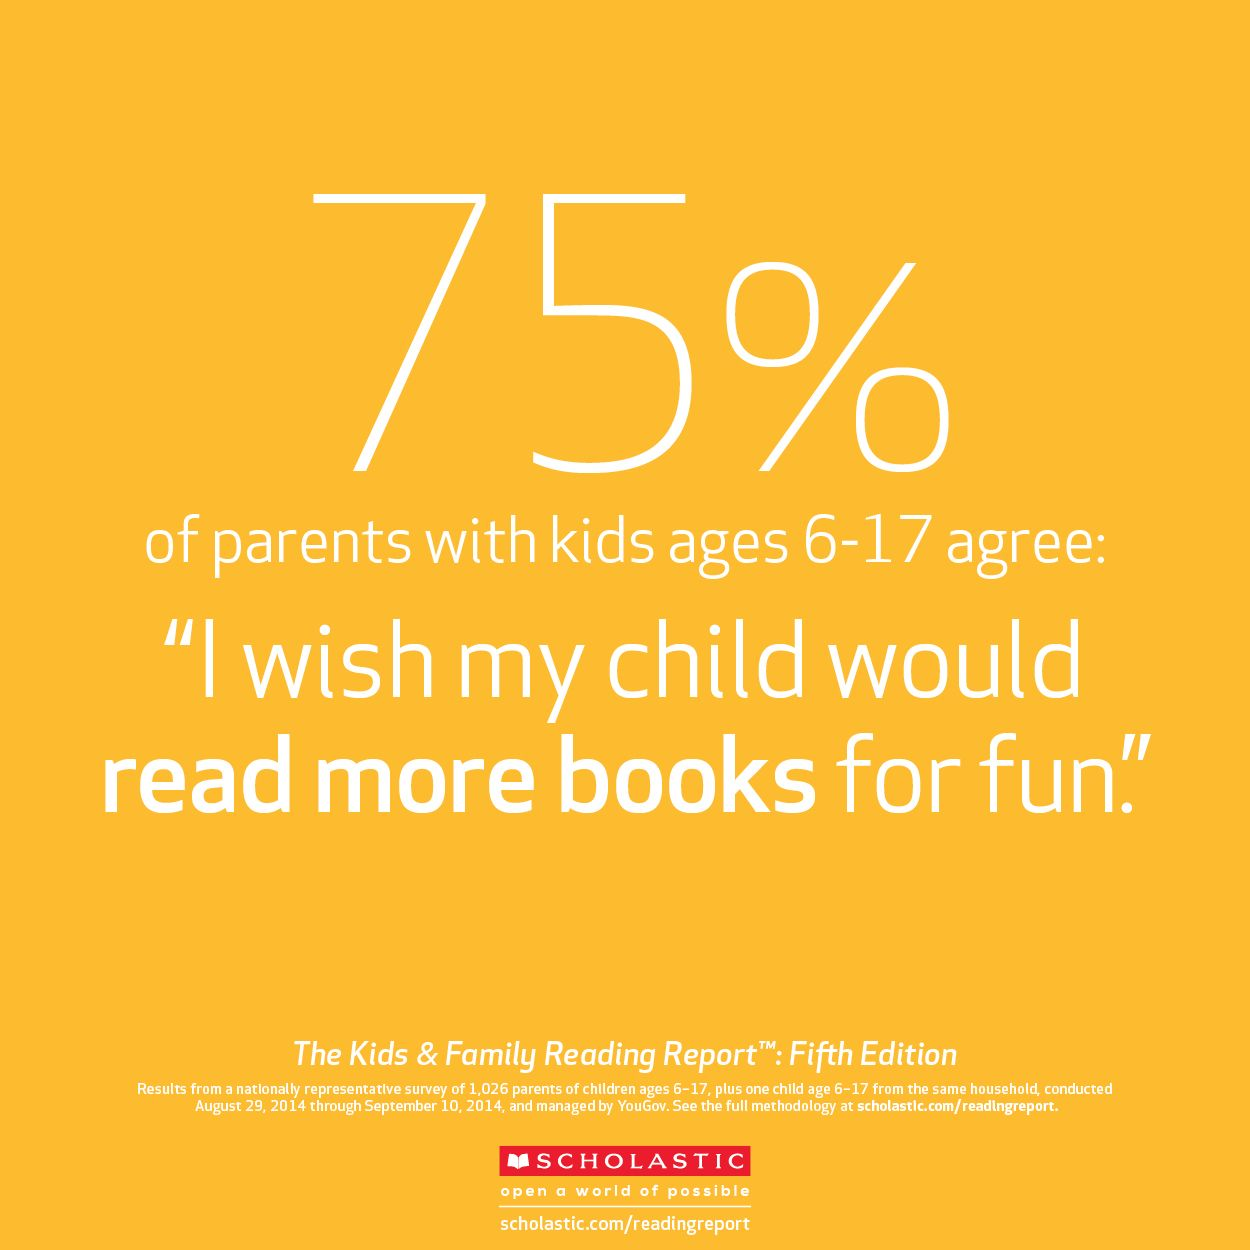 Just One Of The Many Findings From The 5th Edition Of Our Kids